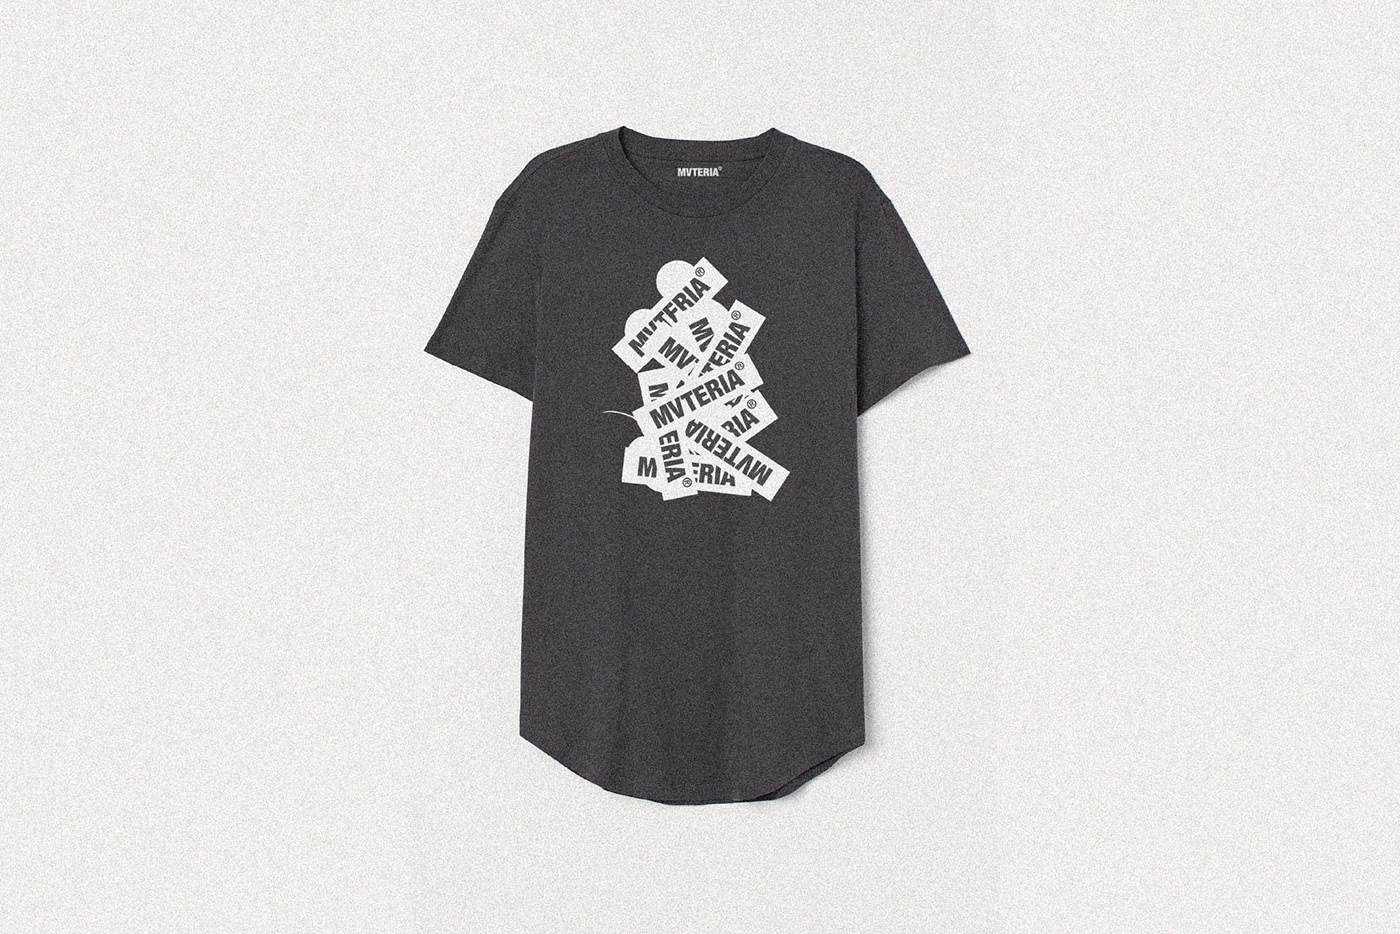 3D brand Clothing contemporary experimental Fashion  identity Materia streetwear Typeface